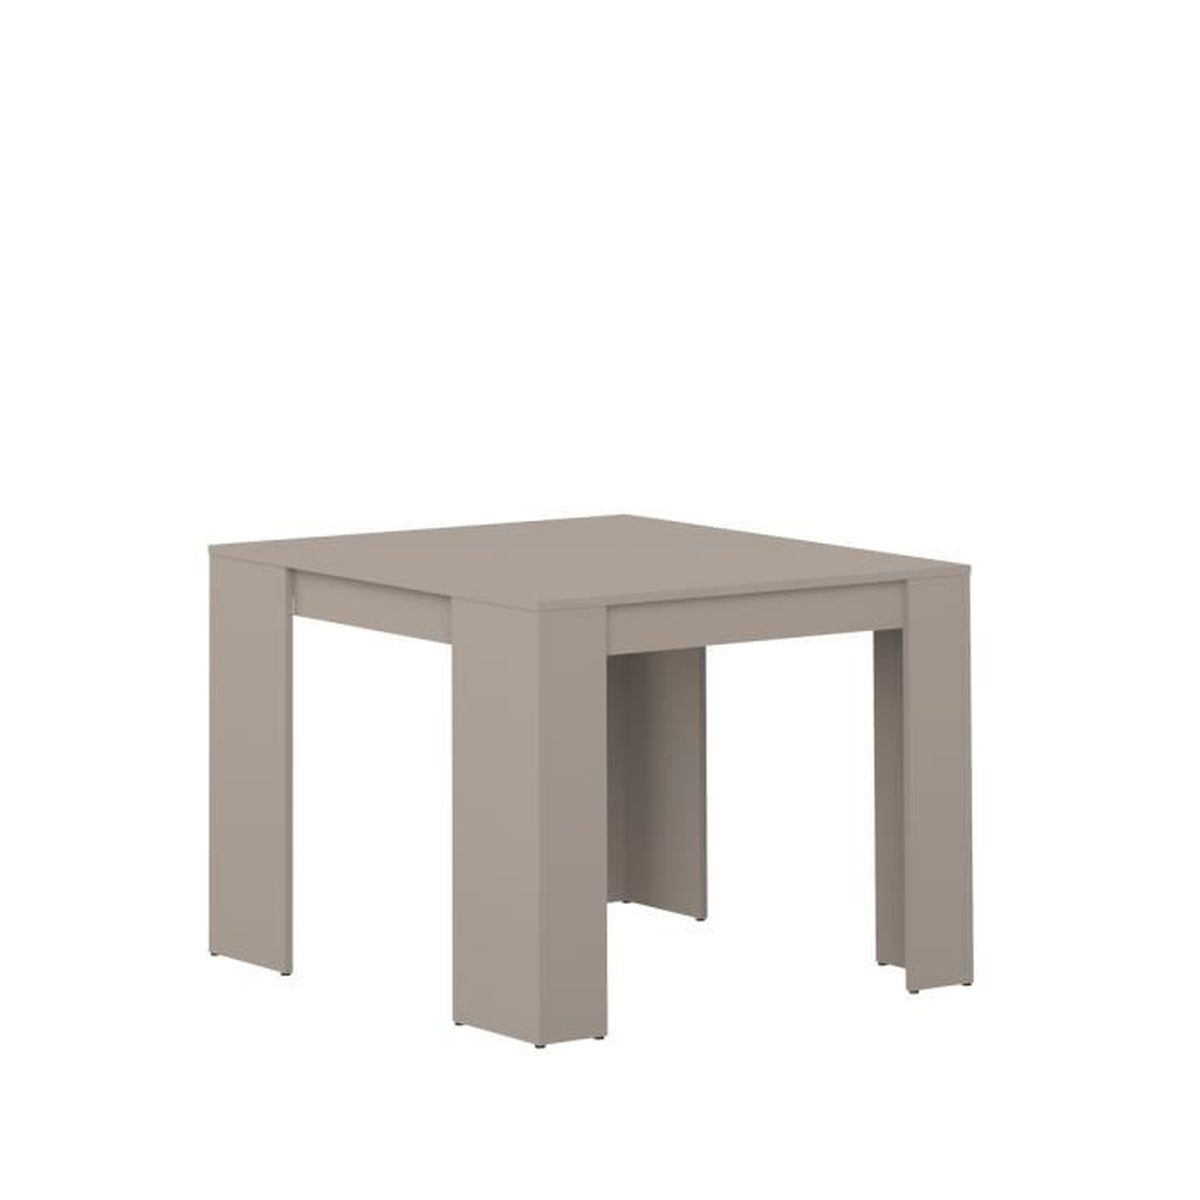 mexx table console extensible 198cm coloris taupe achat vente console extensible mexx table. Black Bedroom Furniture Sets. Home Design Ideas